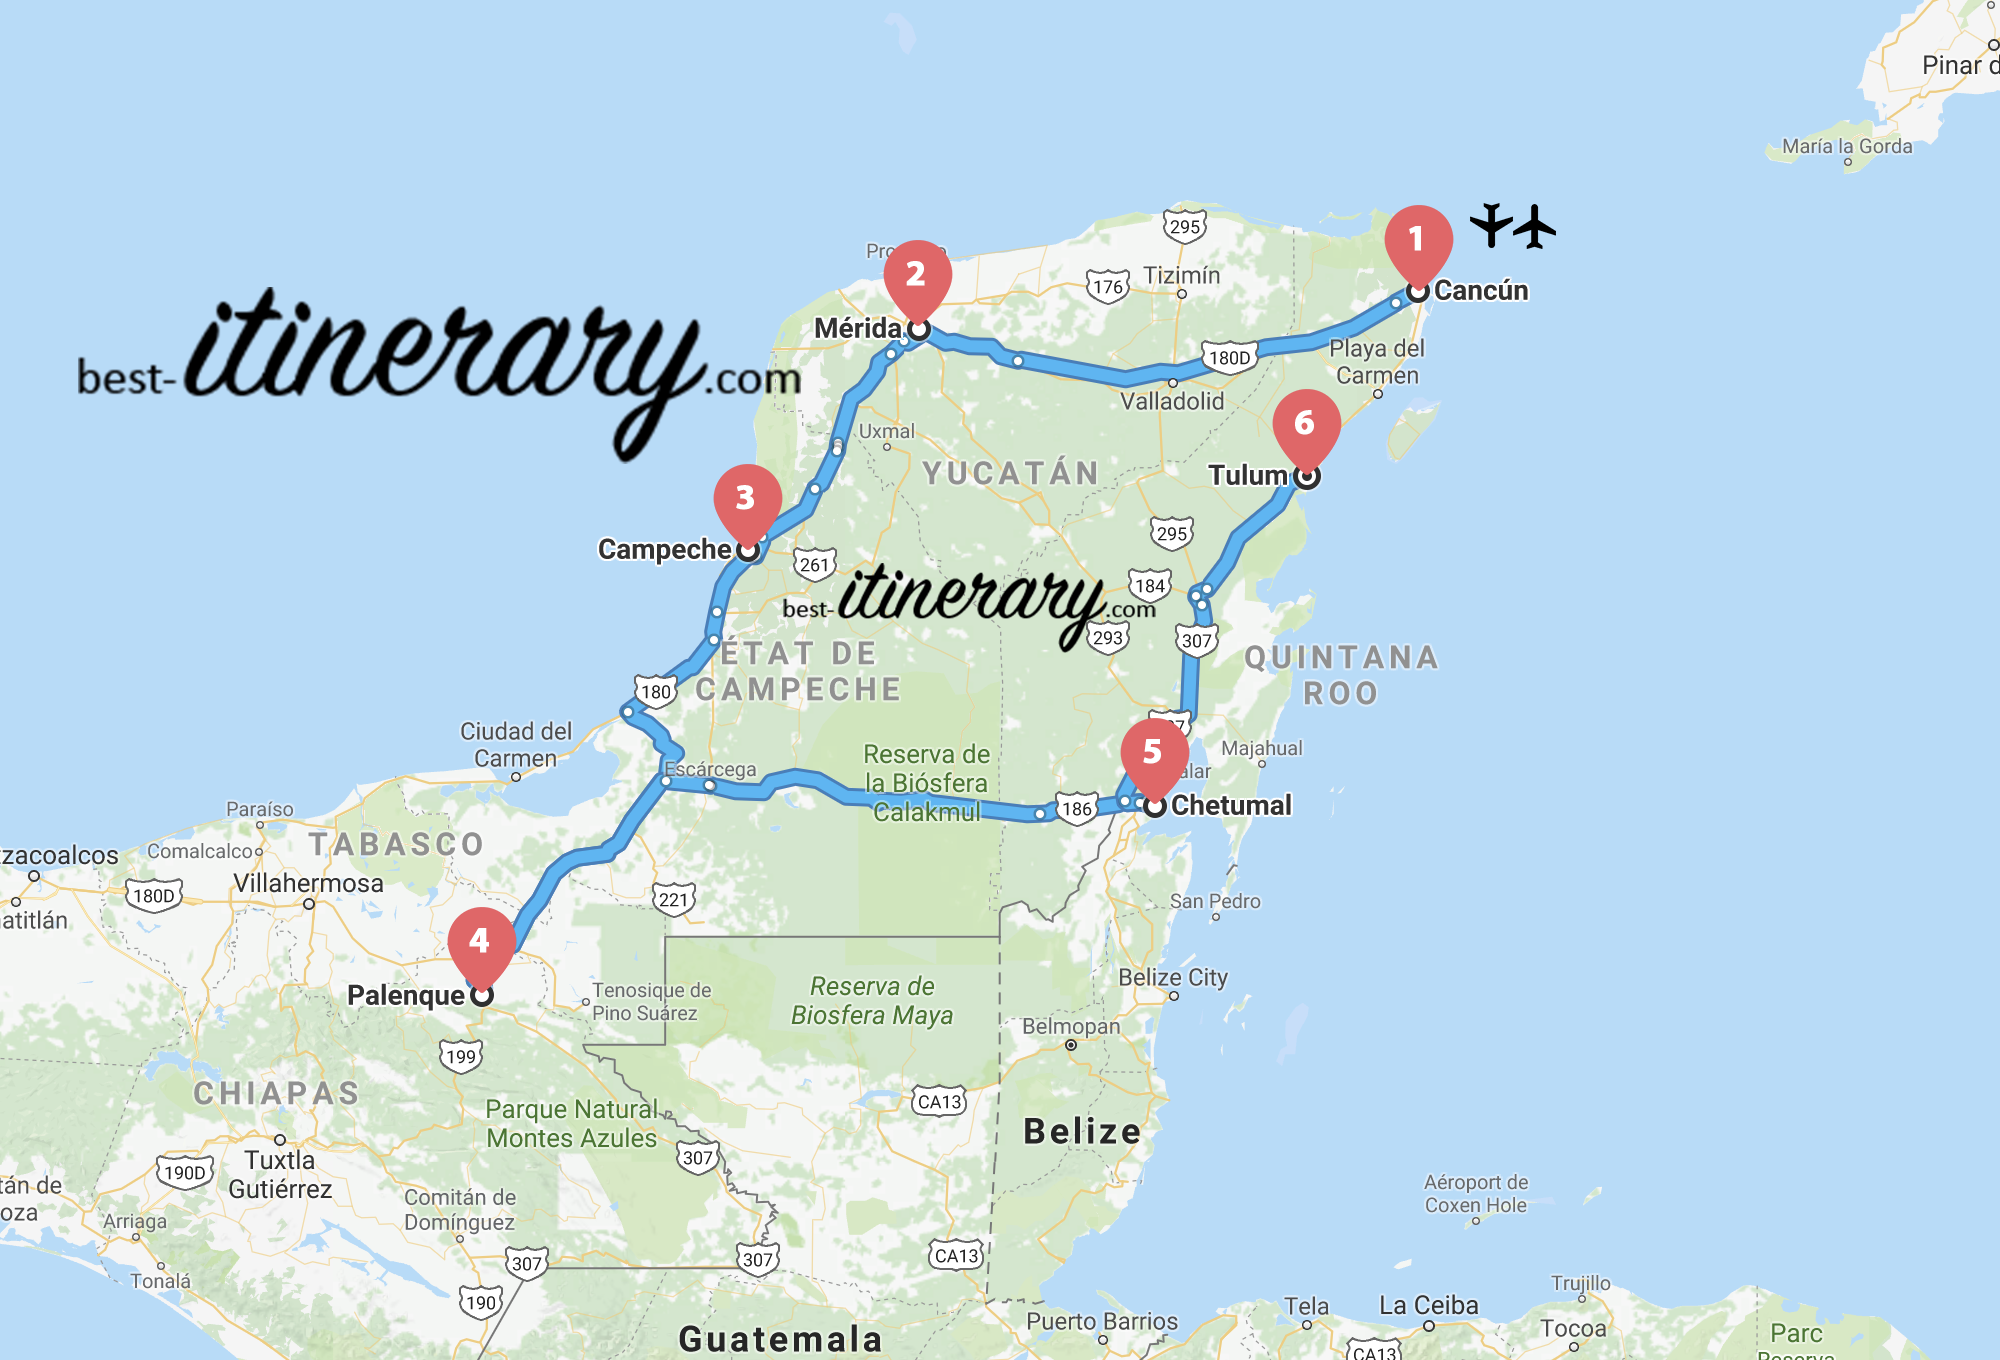 1 week in Yucatán in Mexico - Best Itinerary Yucatan Road Map on london road map, bahia road map, quintana roo road map, england road map, somerset road map, portland road map, scotland road map, india road map, brazil road map, playa del carmen road map, sao paulo road map, chihuahua road map, ireland road map, italy road map, merida map, colombia road map, mexico road map, south australia road map, yukon road map, norfolk road map,